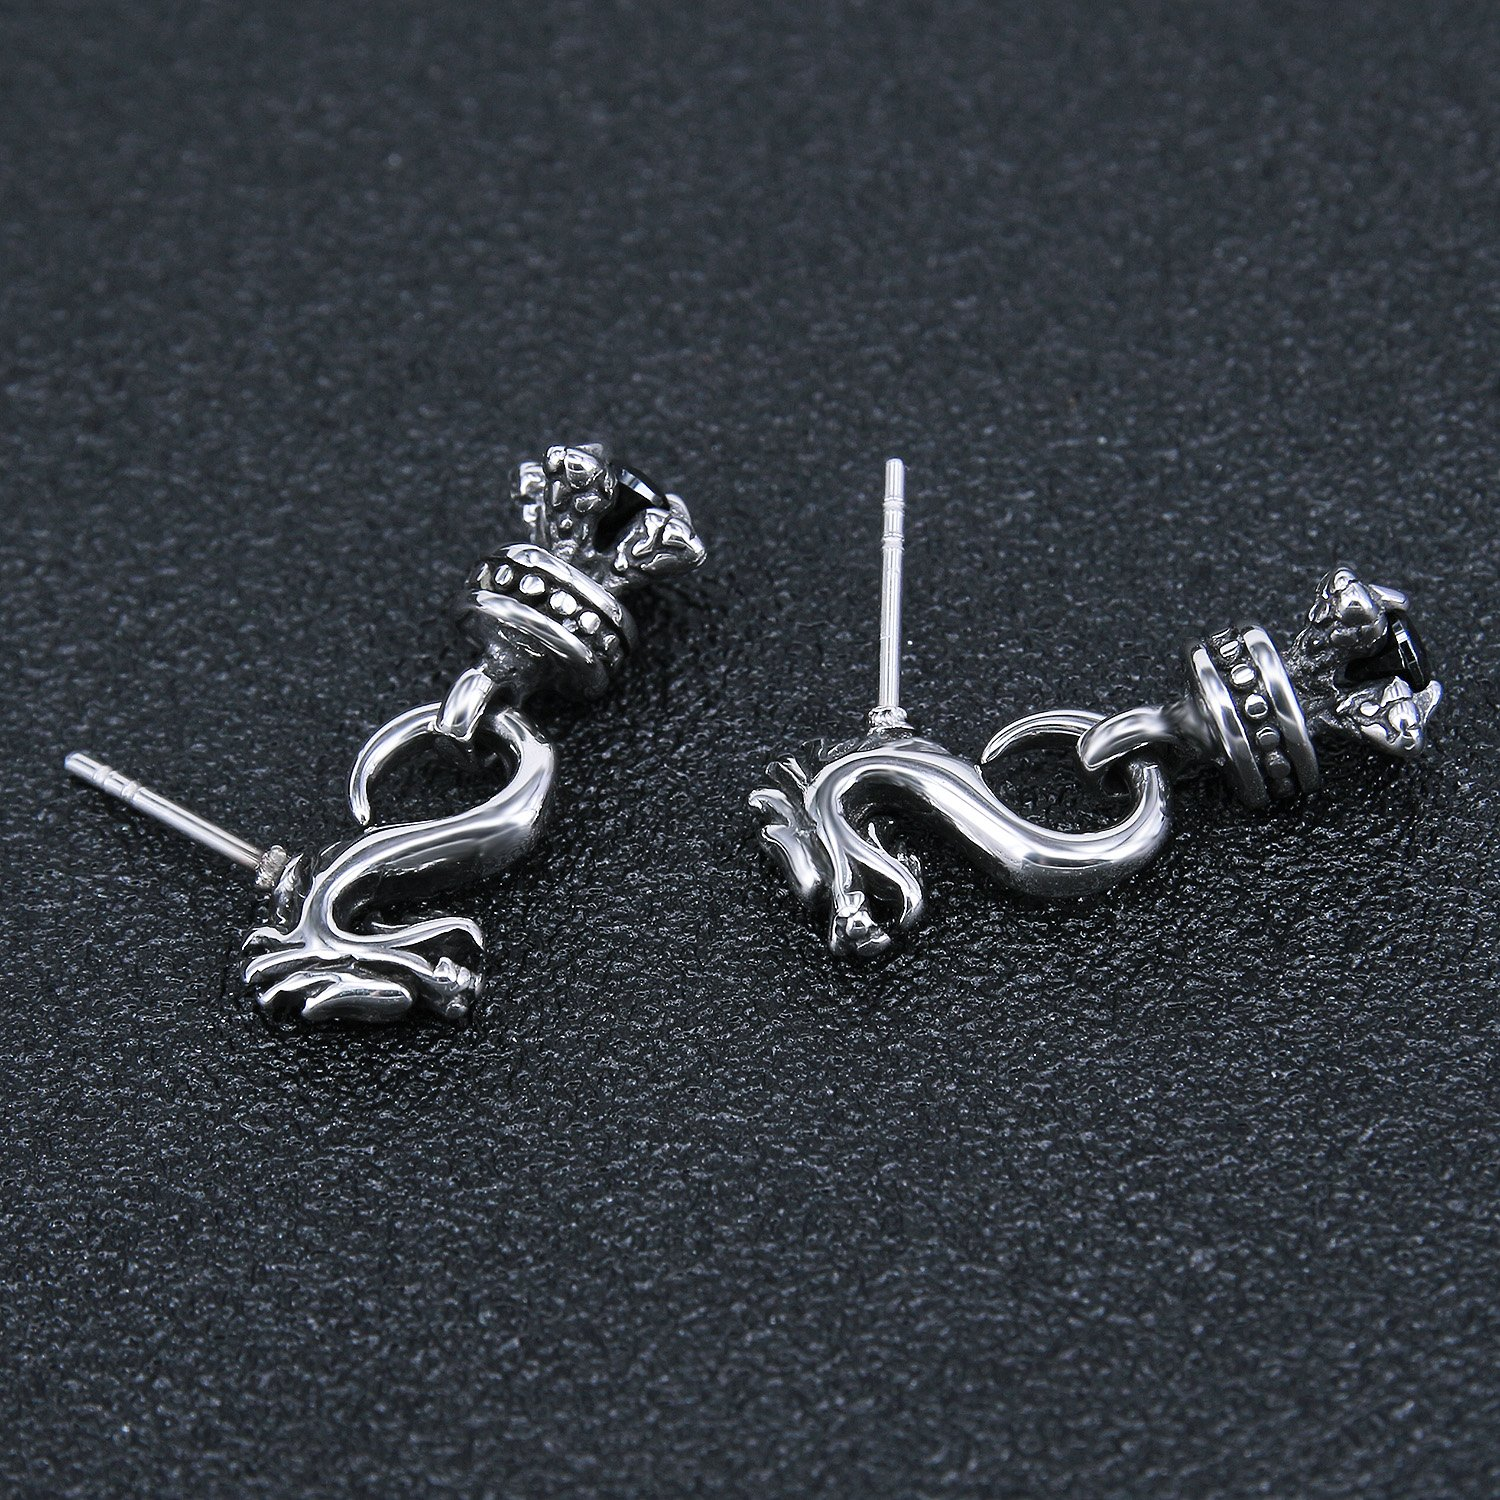 Vintage Sword Skull Rose Drop Dangle Stud Earrings 316L Surgical Steel Punk Cartilage Earrings Mens Women (Dragon Style) by PiercingCool (Image #4)